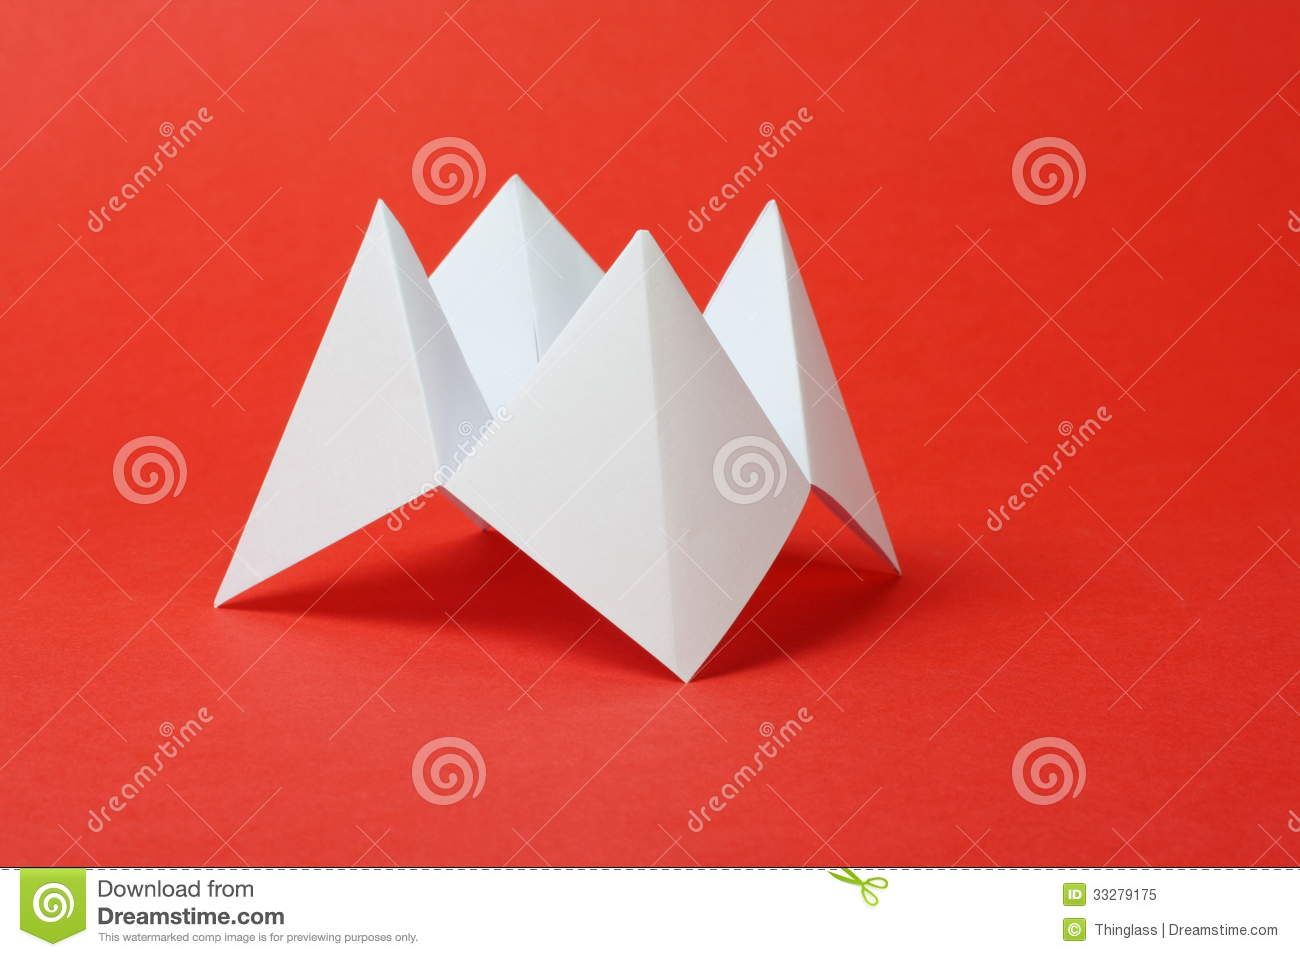 An Origami Fortune Teller Or Cootie Catcher Made From Blank White